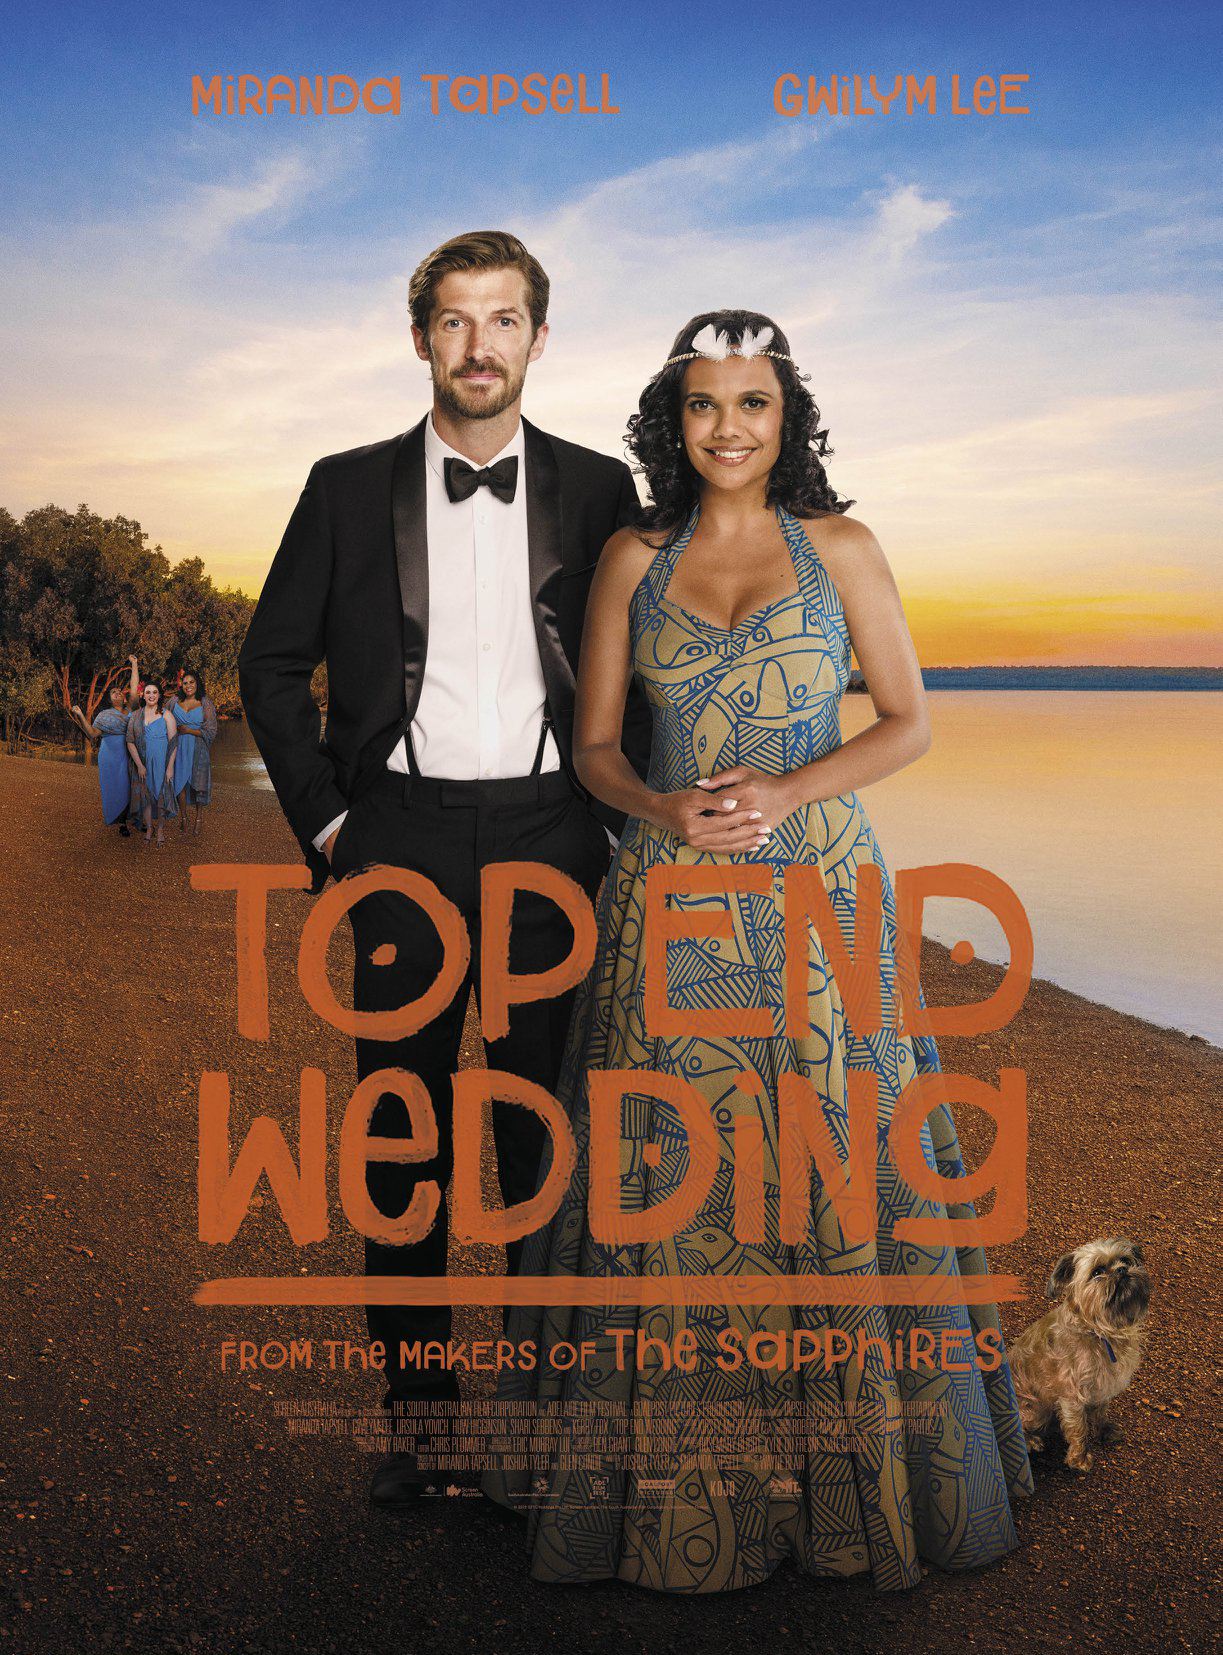 Top End Wedding (2019) - IMDb